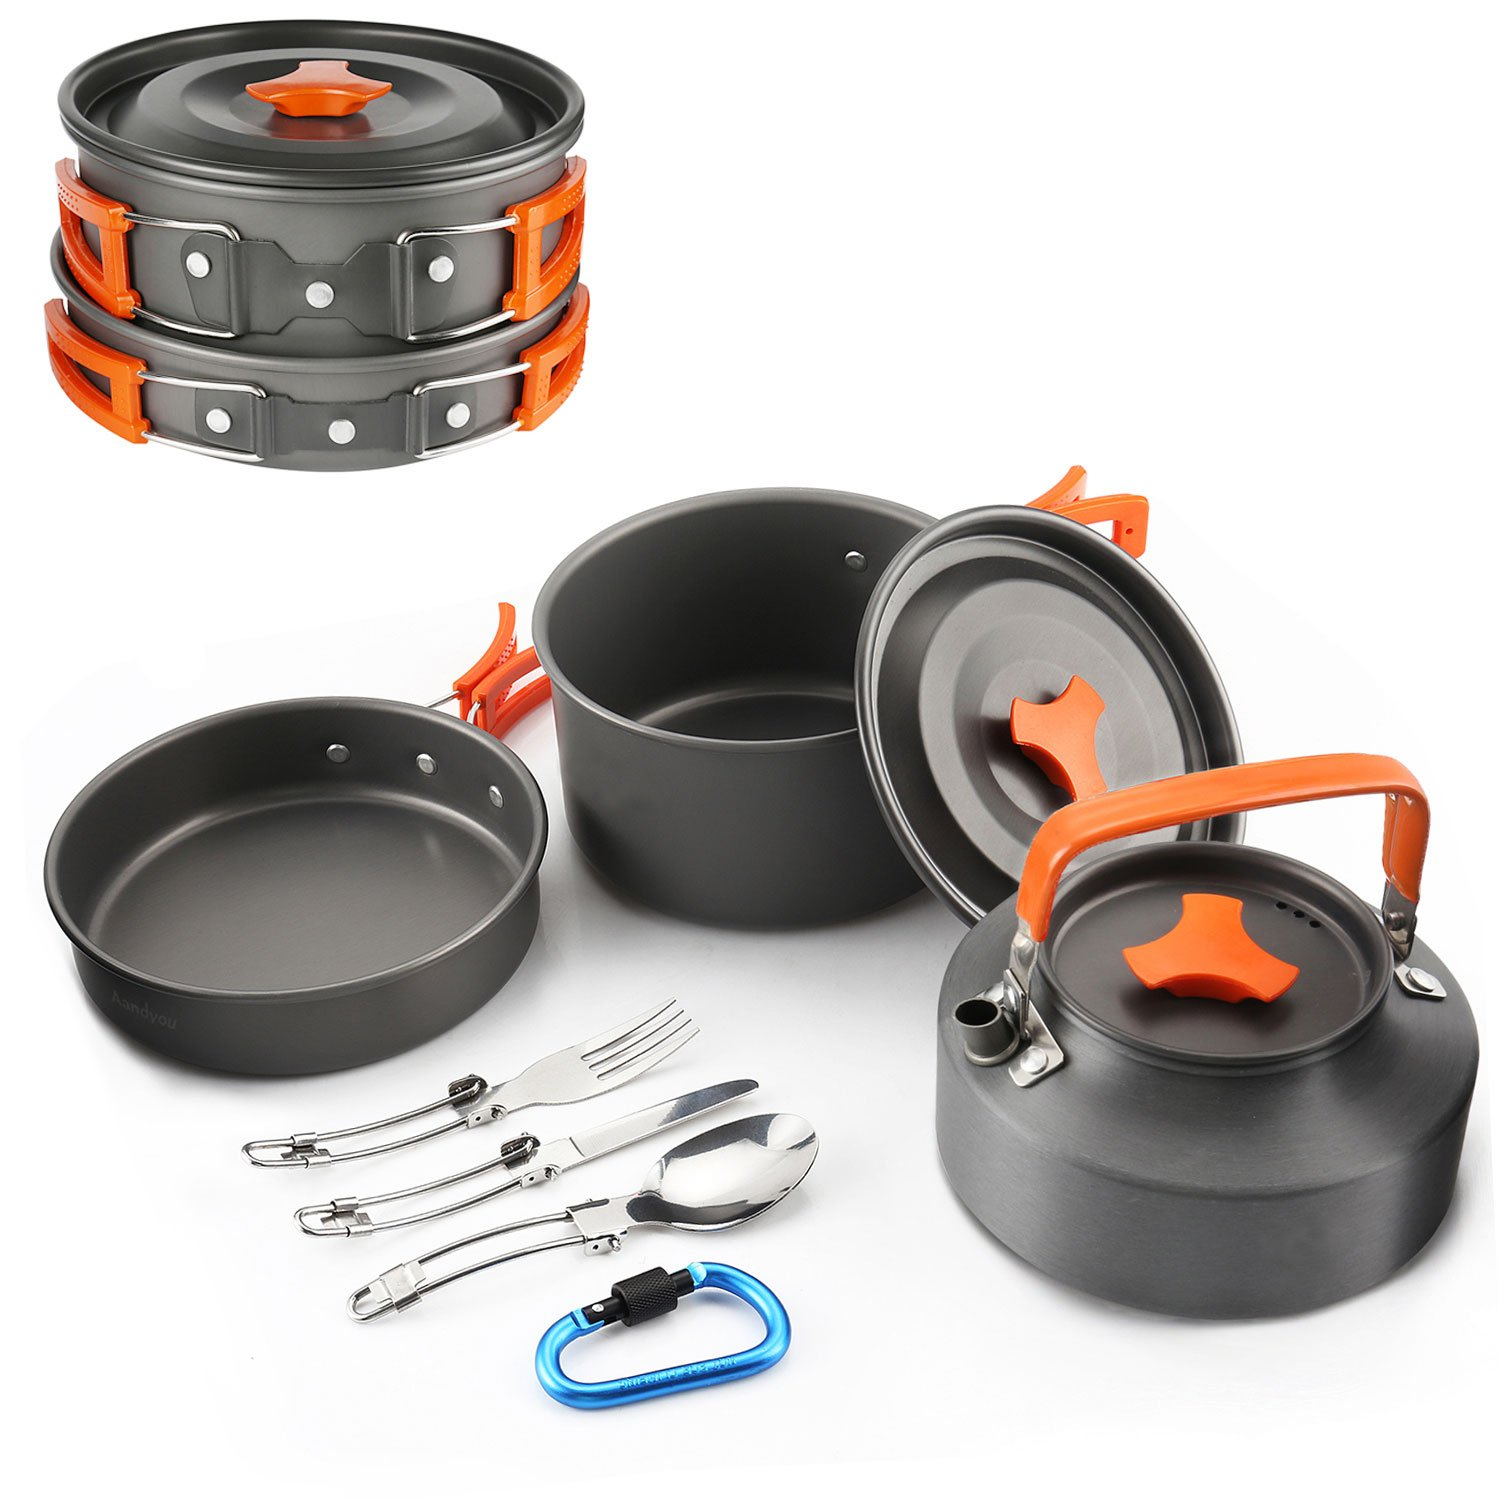 FLYTON Camping Cookware Outdoor Cooking Mess Kit Portable Lightweight Pots Pans Water Kettle Set for Backpacking Hiking Trekking Picnic Fishing Mountaineering